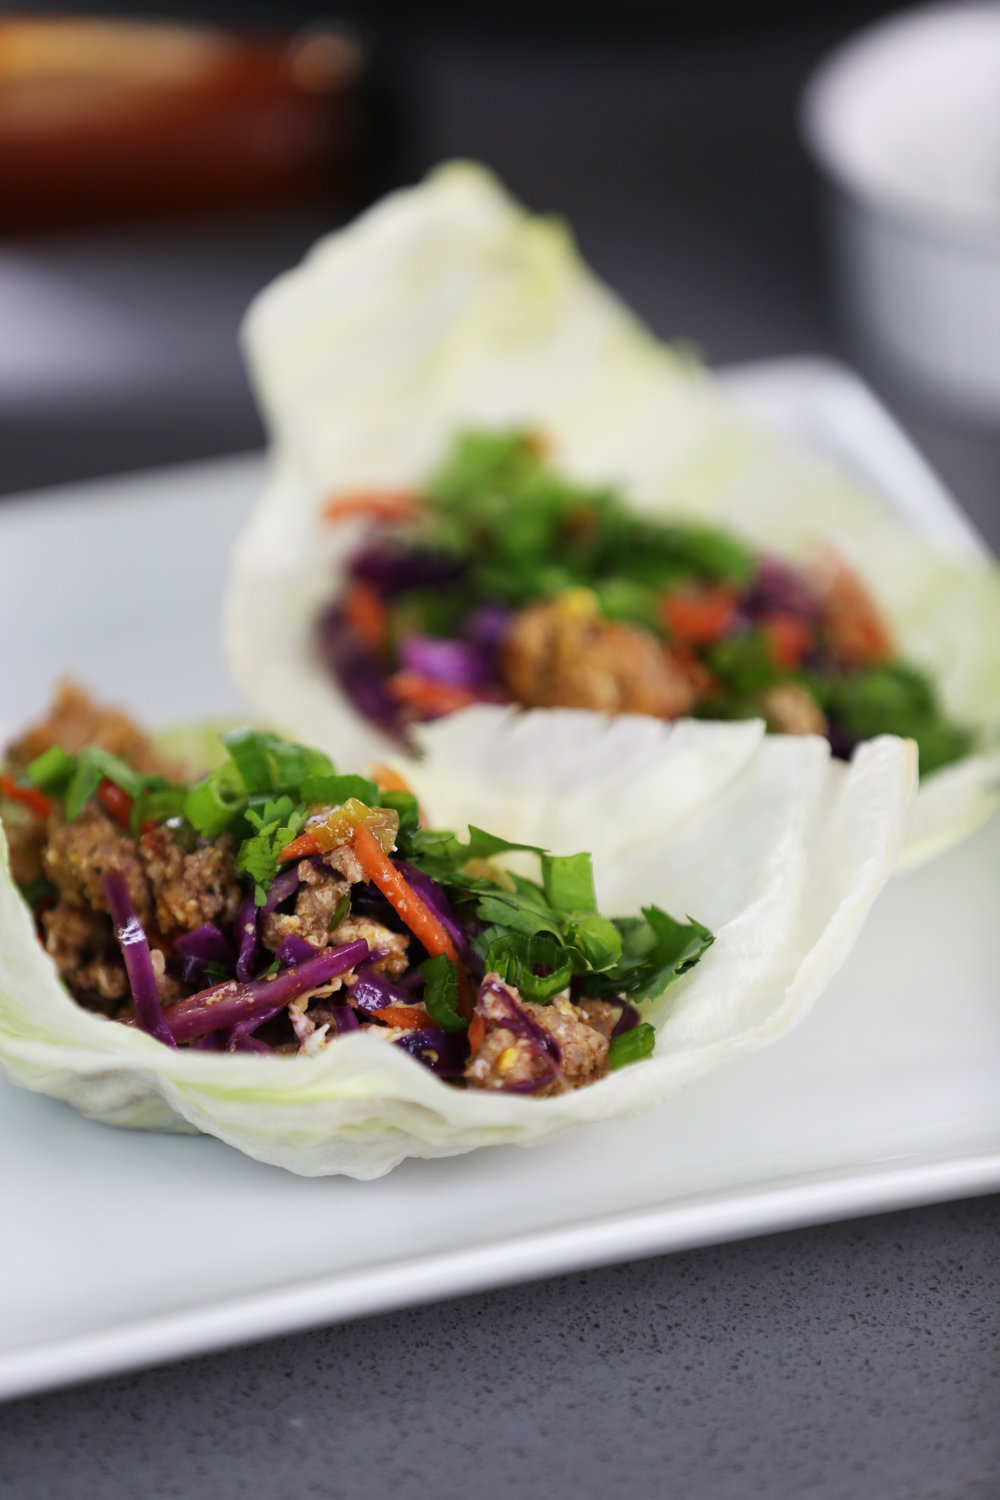 Sweet & Sour Lettuce Wraps